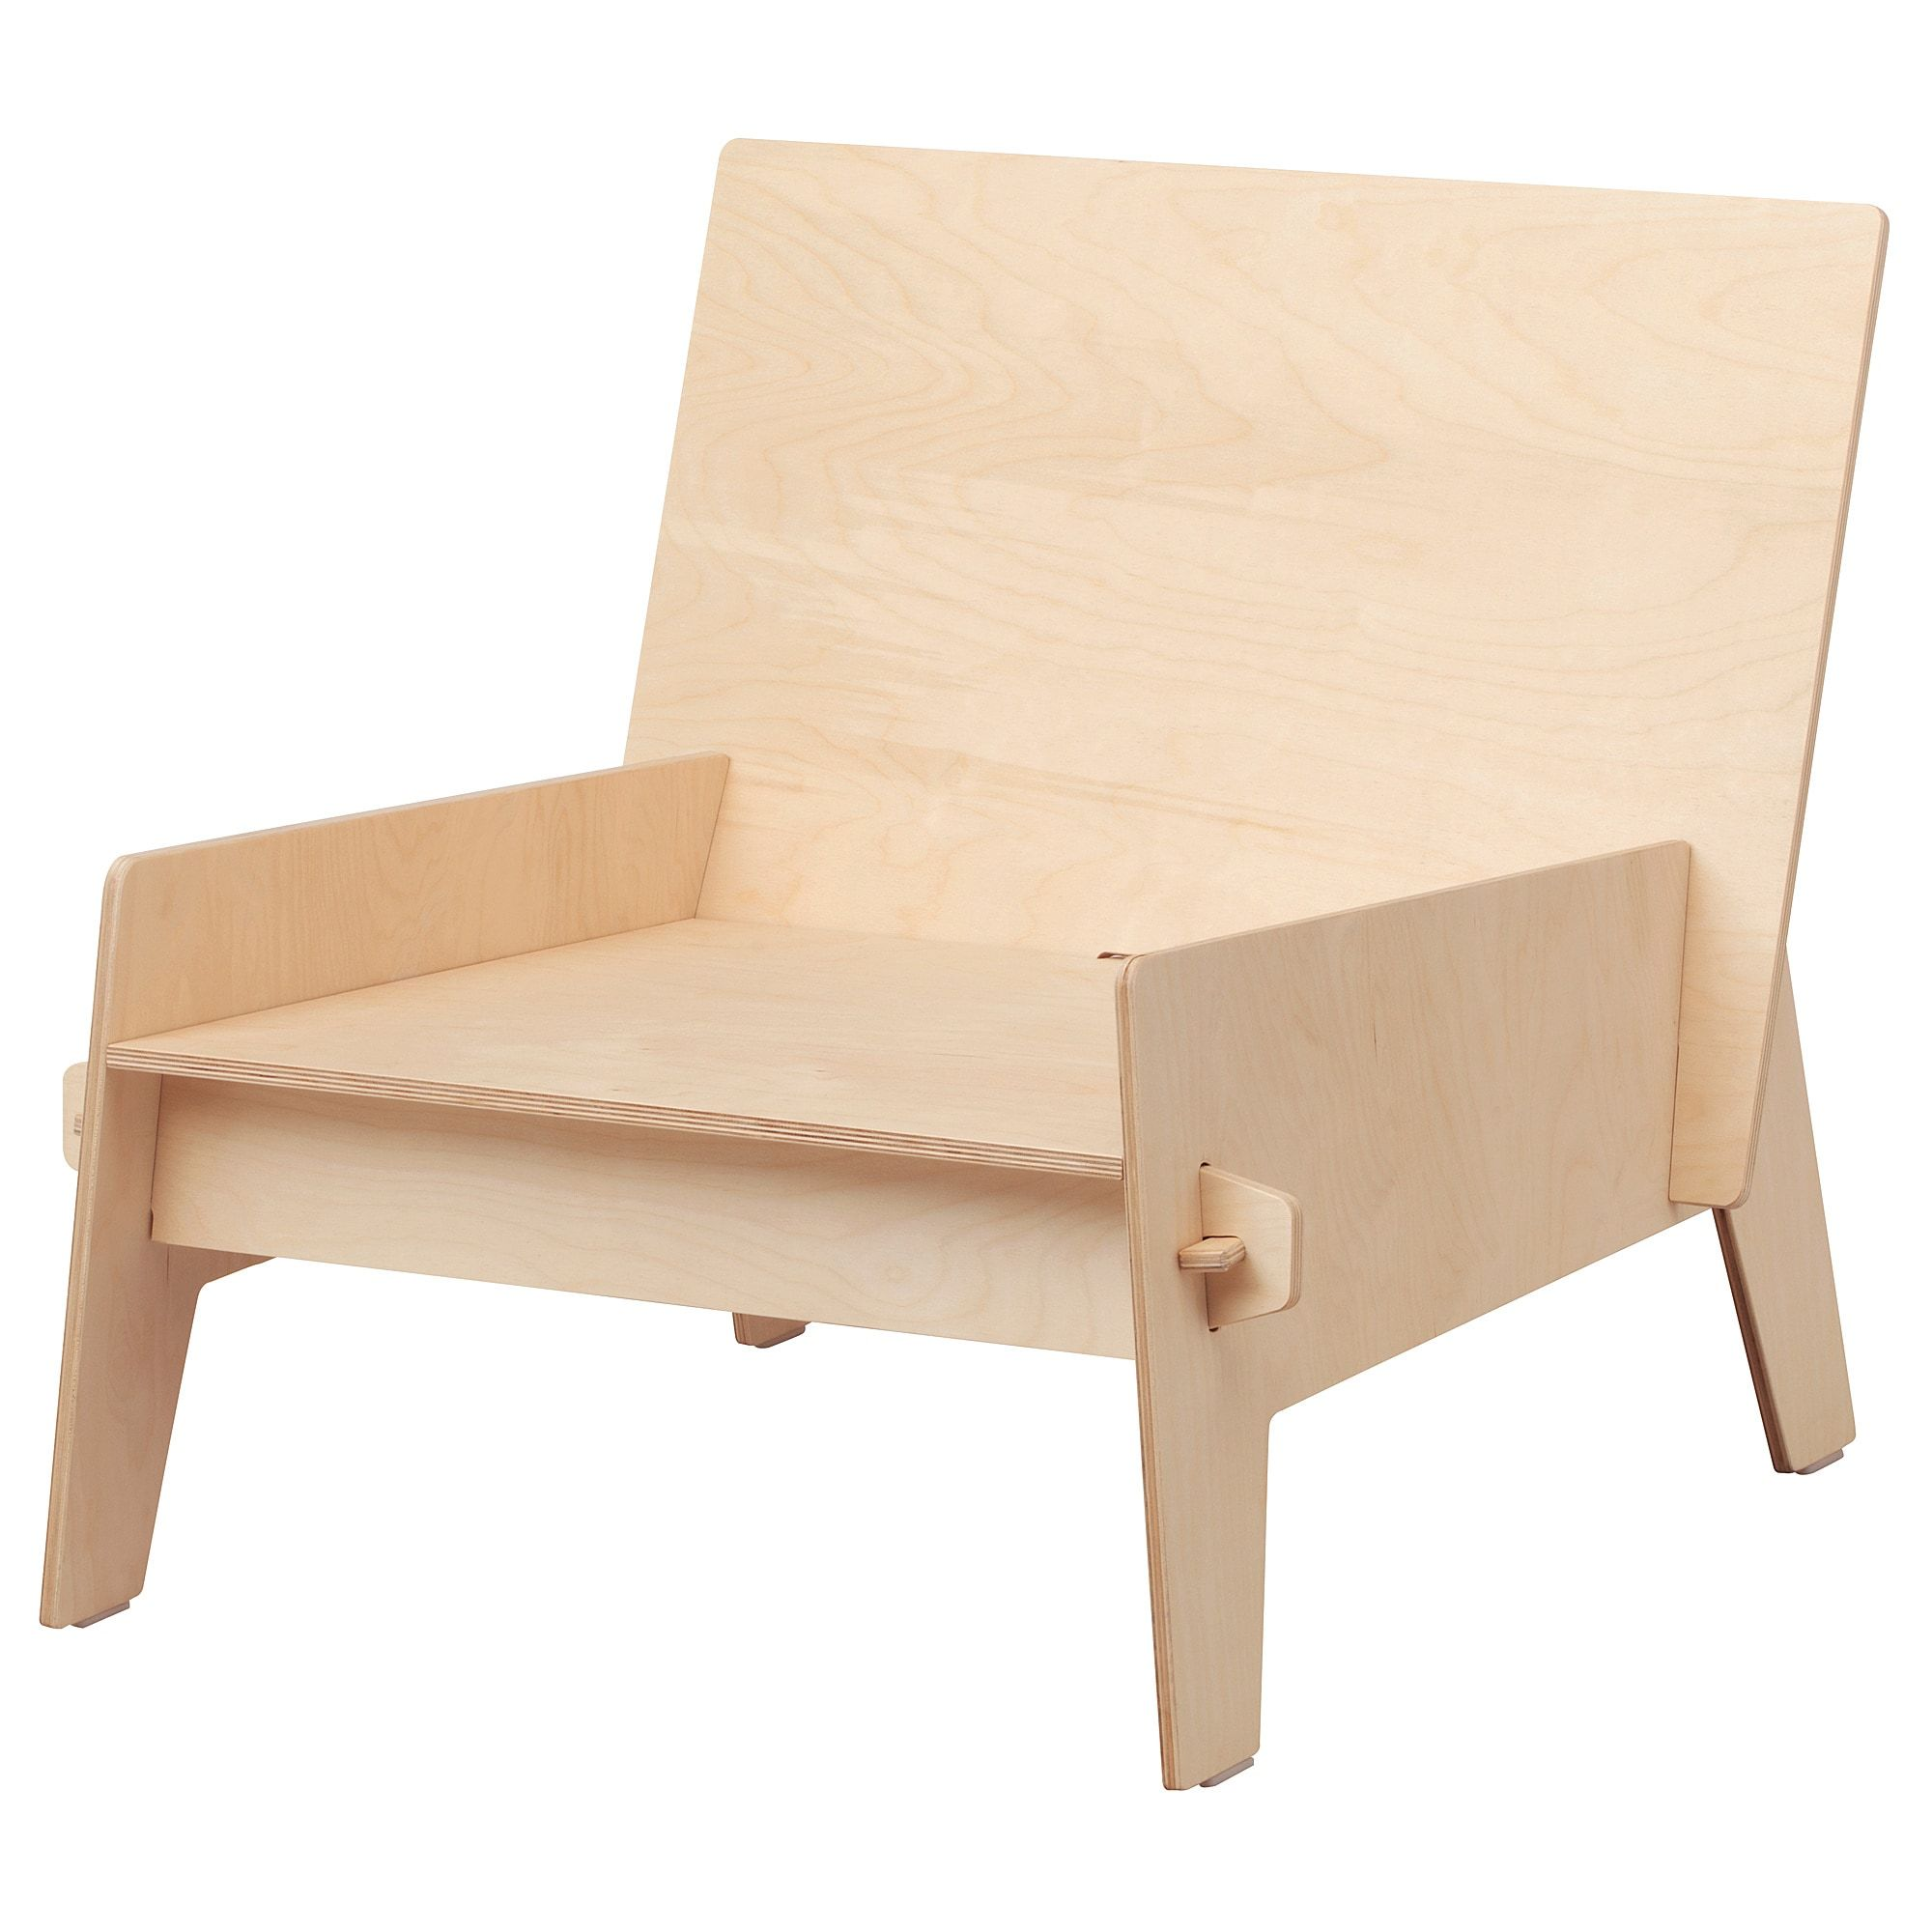 IKEA ÖVERALLT, Chair, plywood, Untreated wood; can be